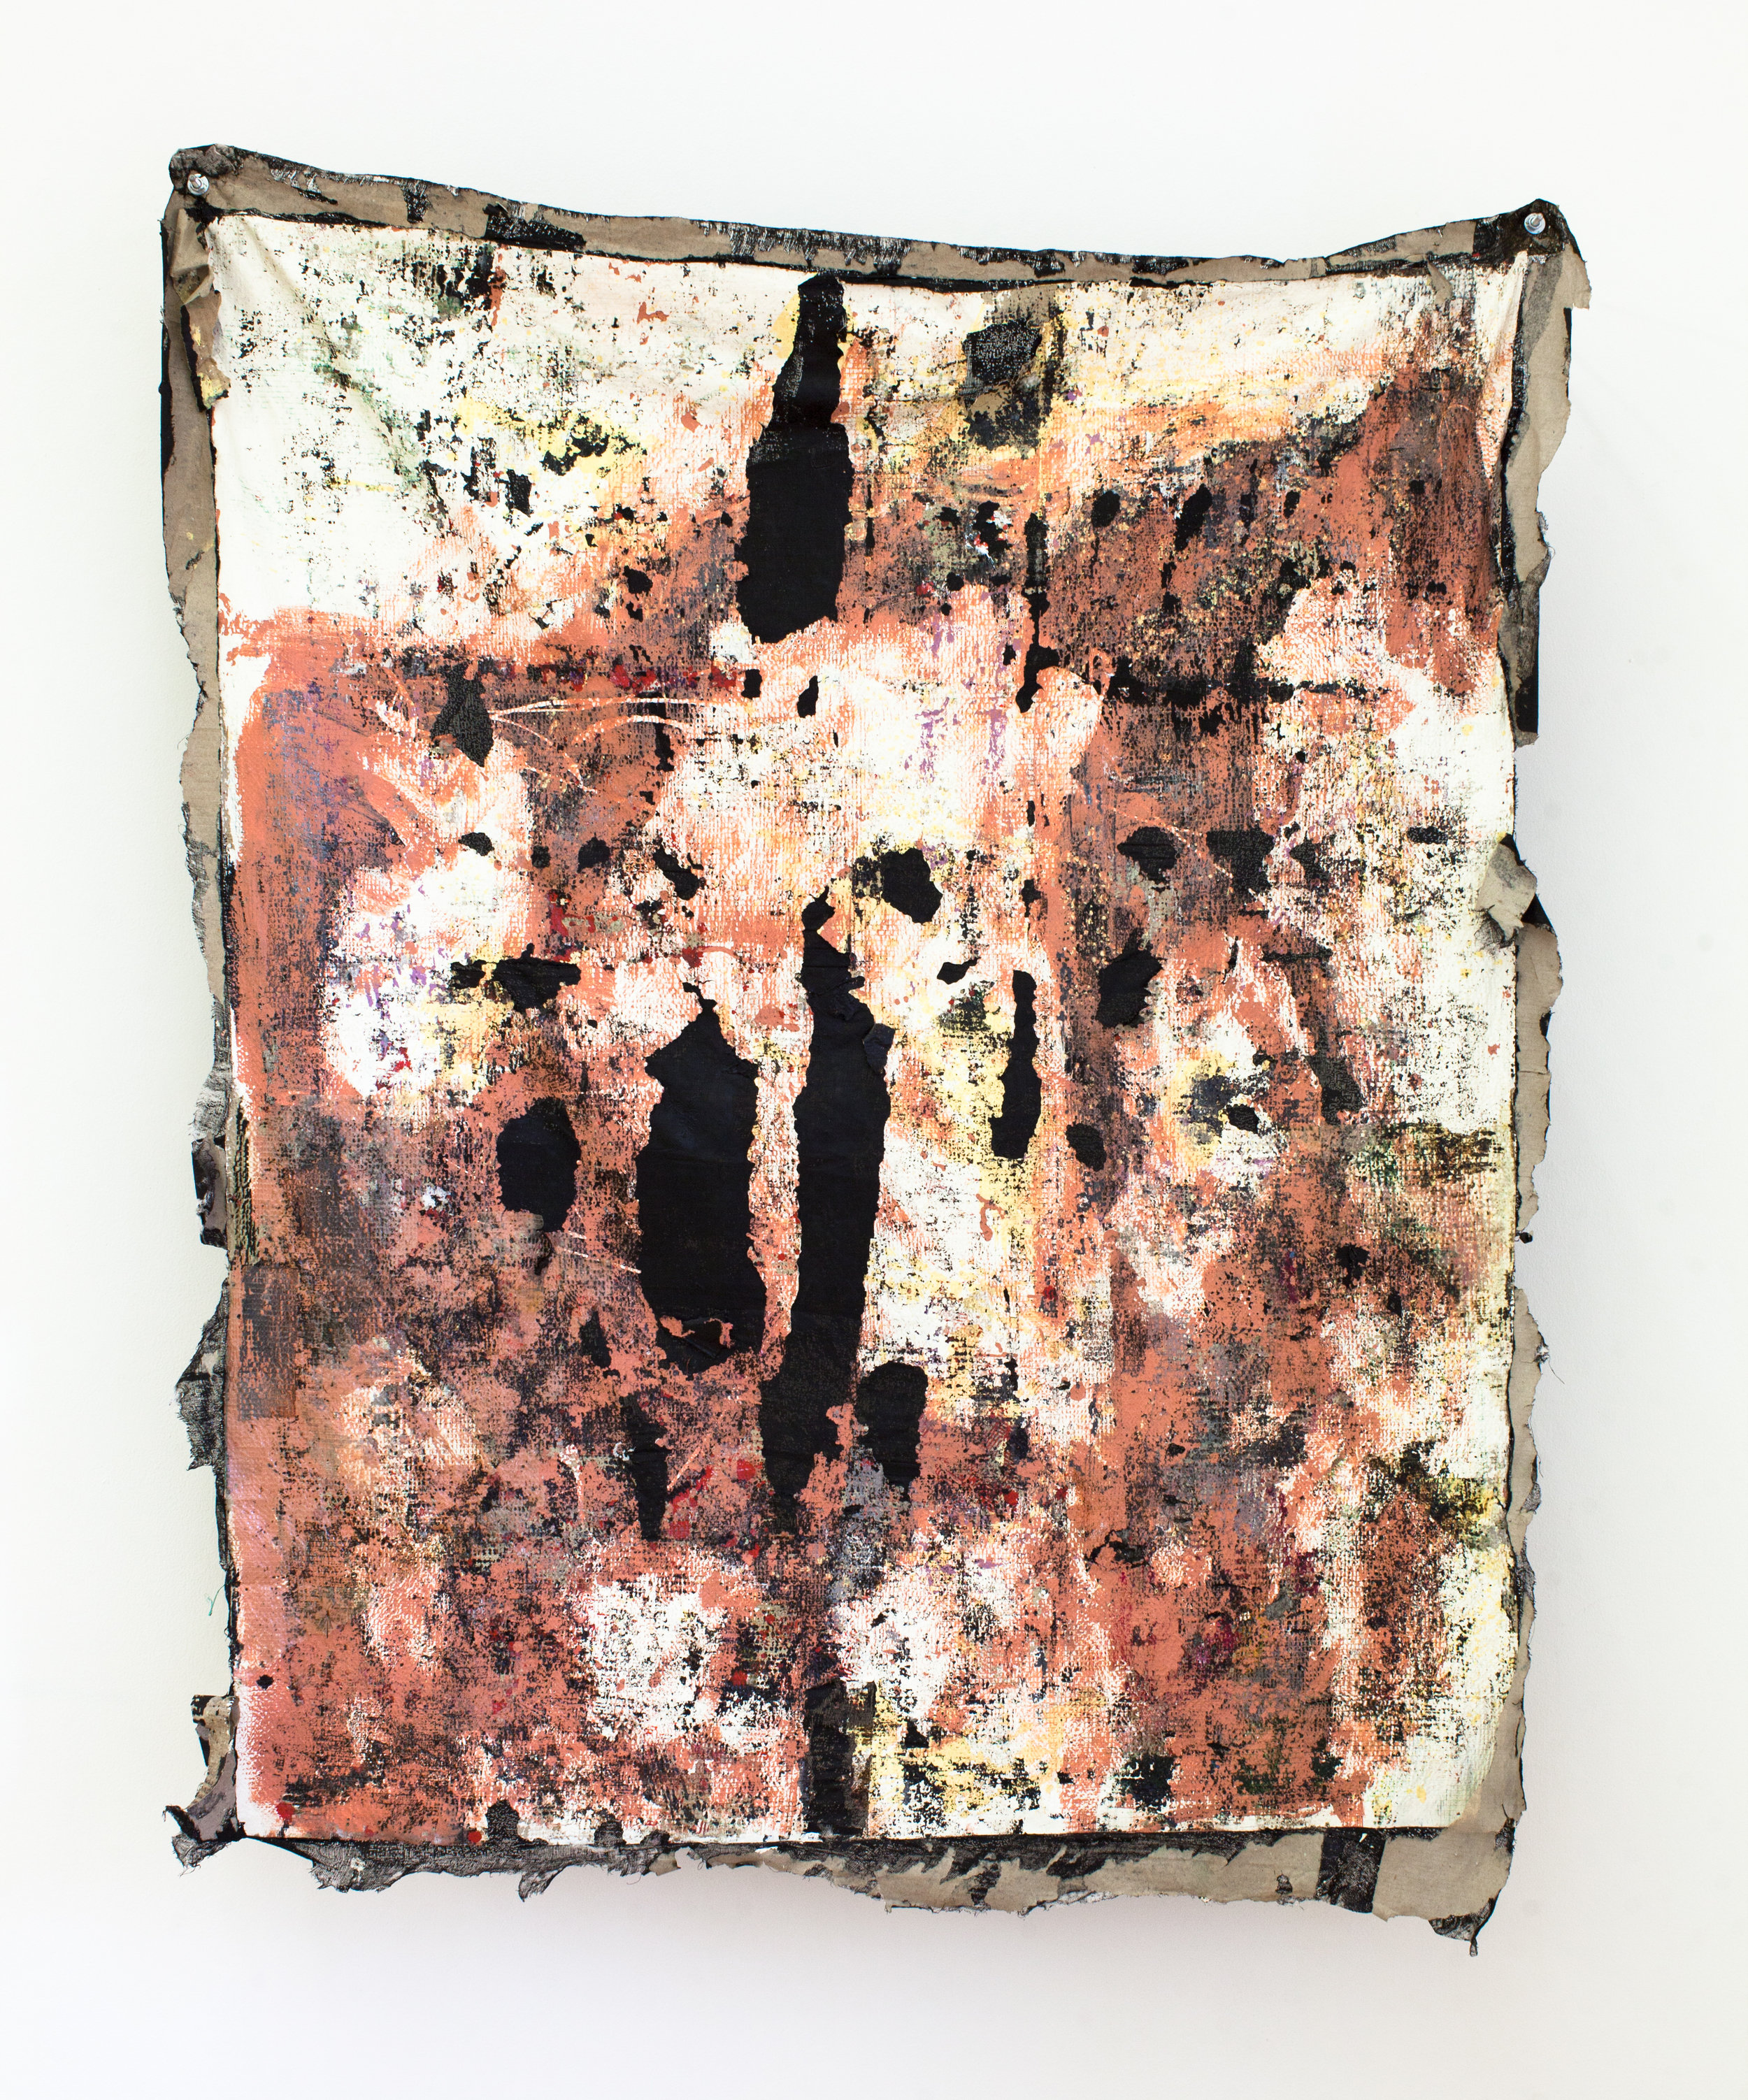 Everything Goes   mistinted house paints, bitumen rubber, pastel, plastic, detritus, cardboard on muslin, steel supports  129 x 105 x 23 cm  Photograph James Field, courtesy Adelaide Central School of Art